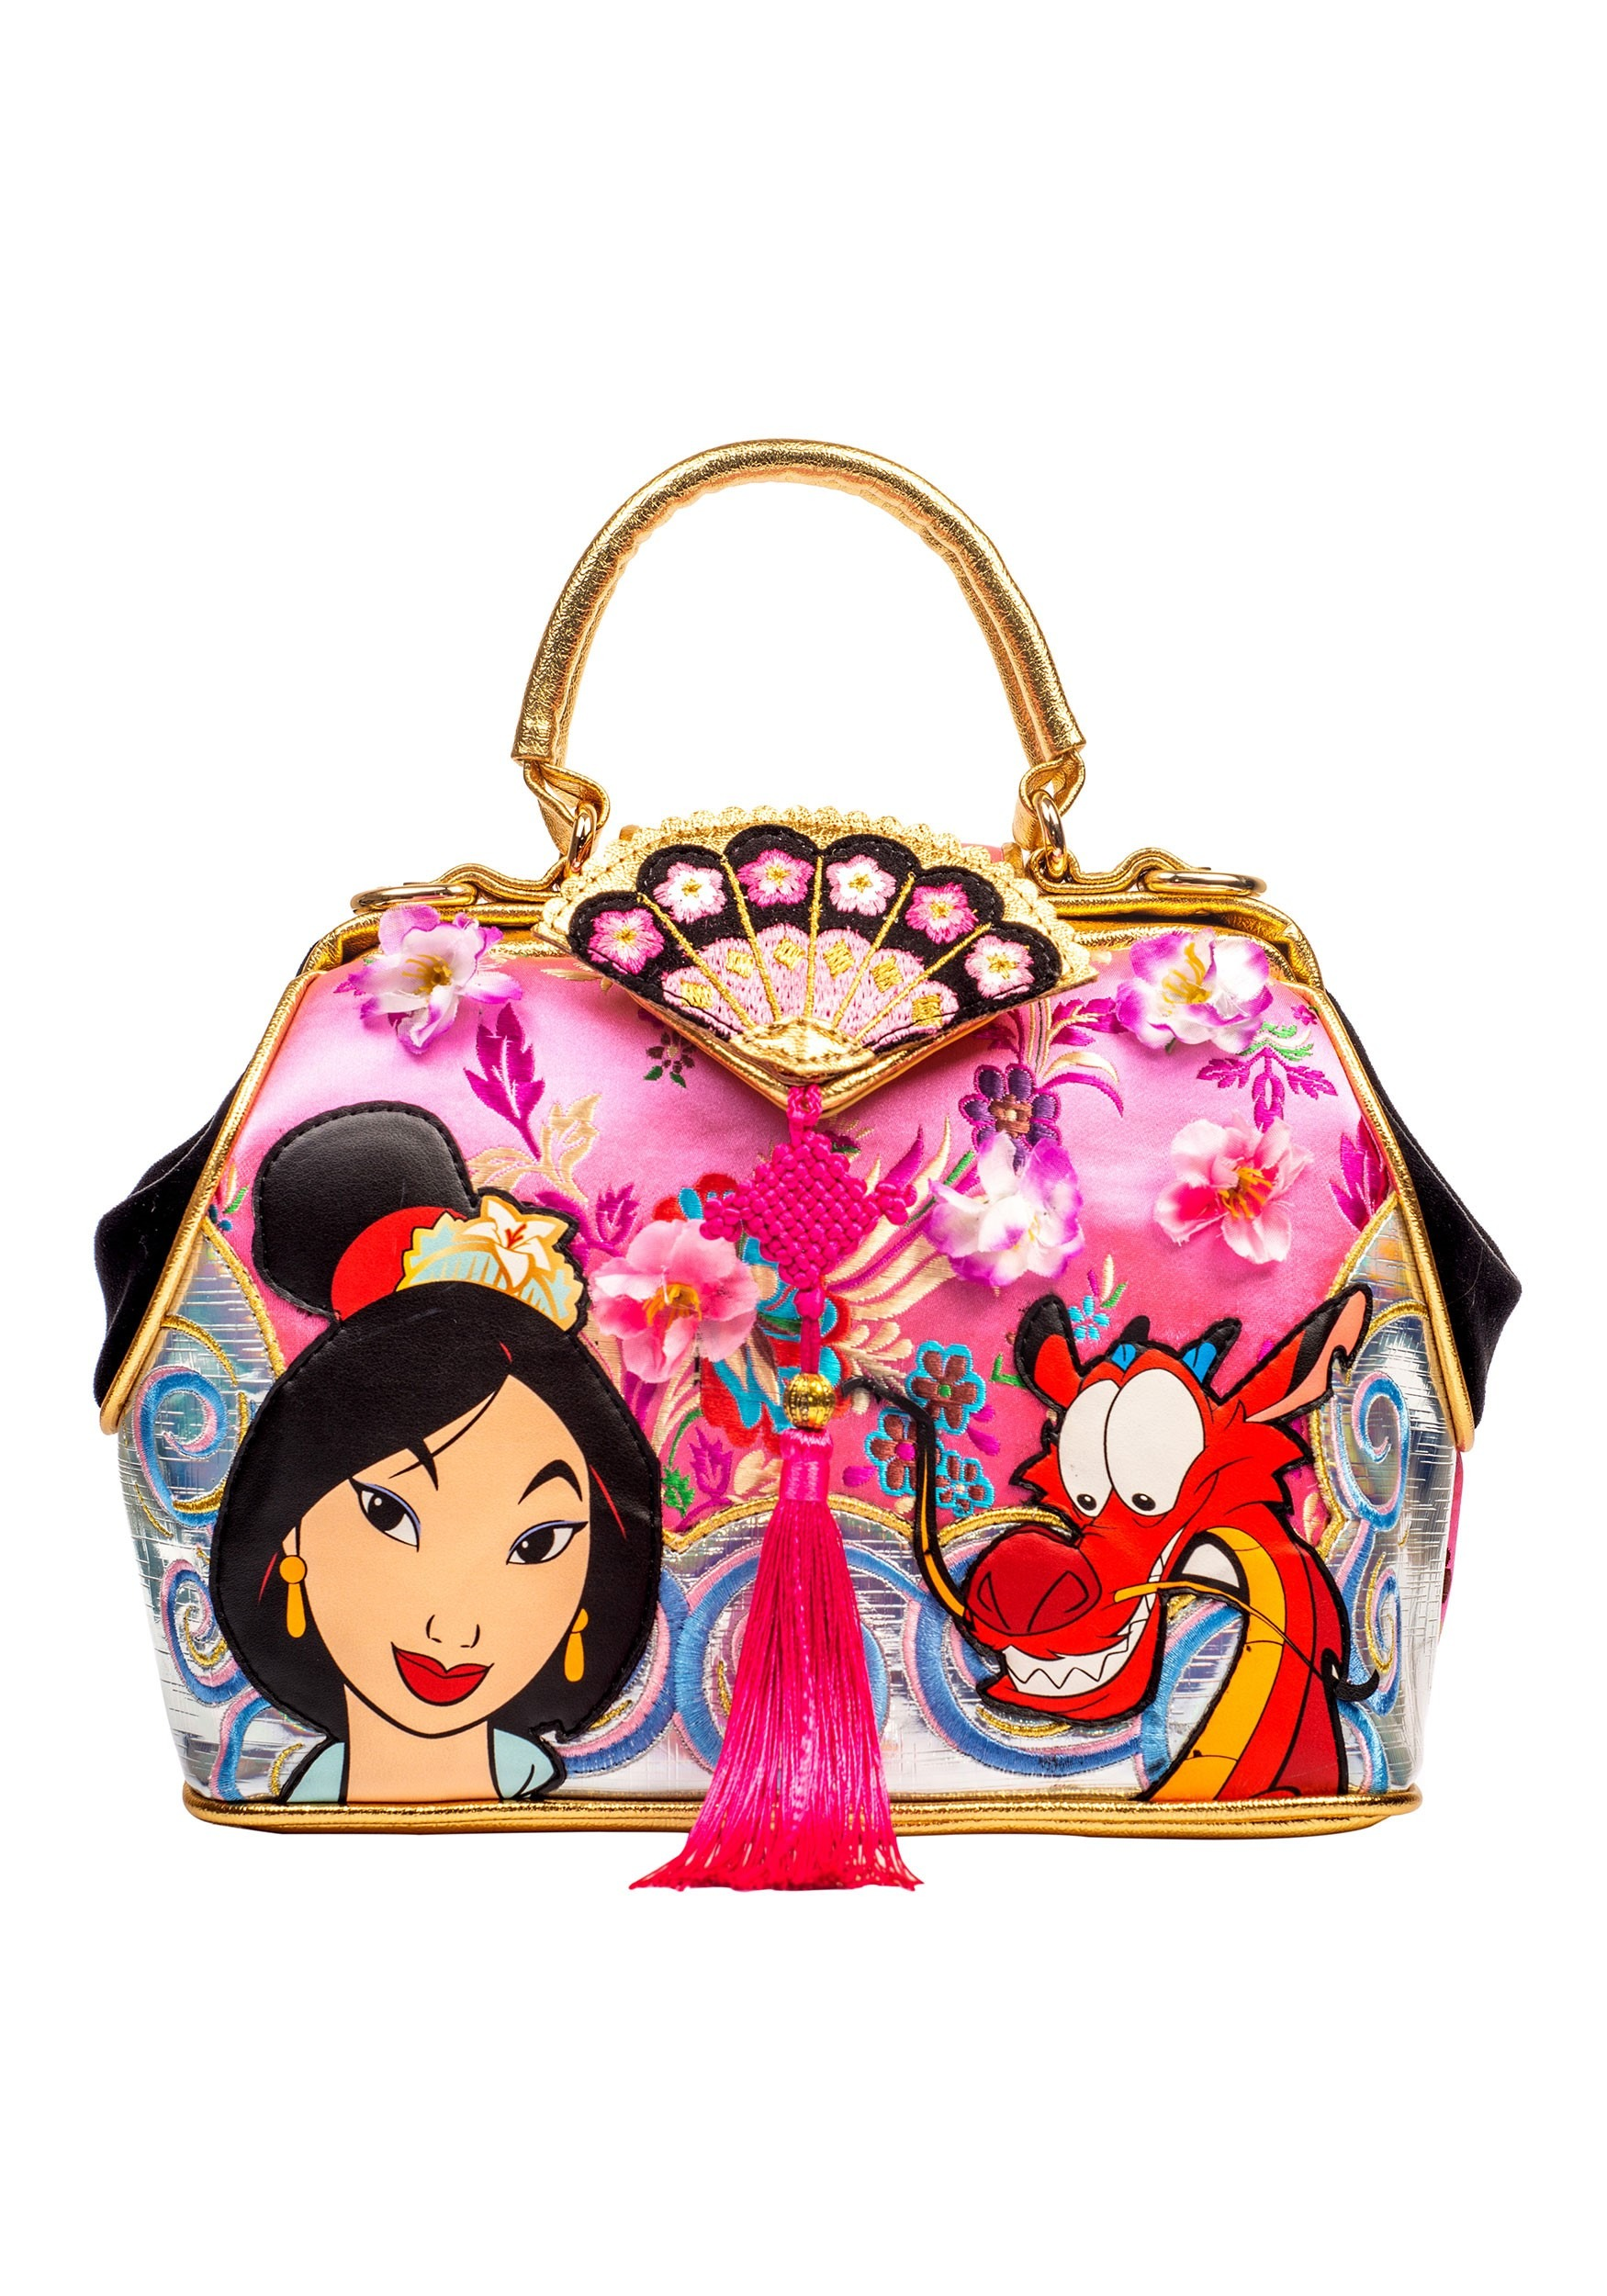 Irregular Choice Disney Princess Mulan 'Let Dreams Blossom' Handbag